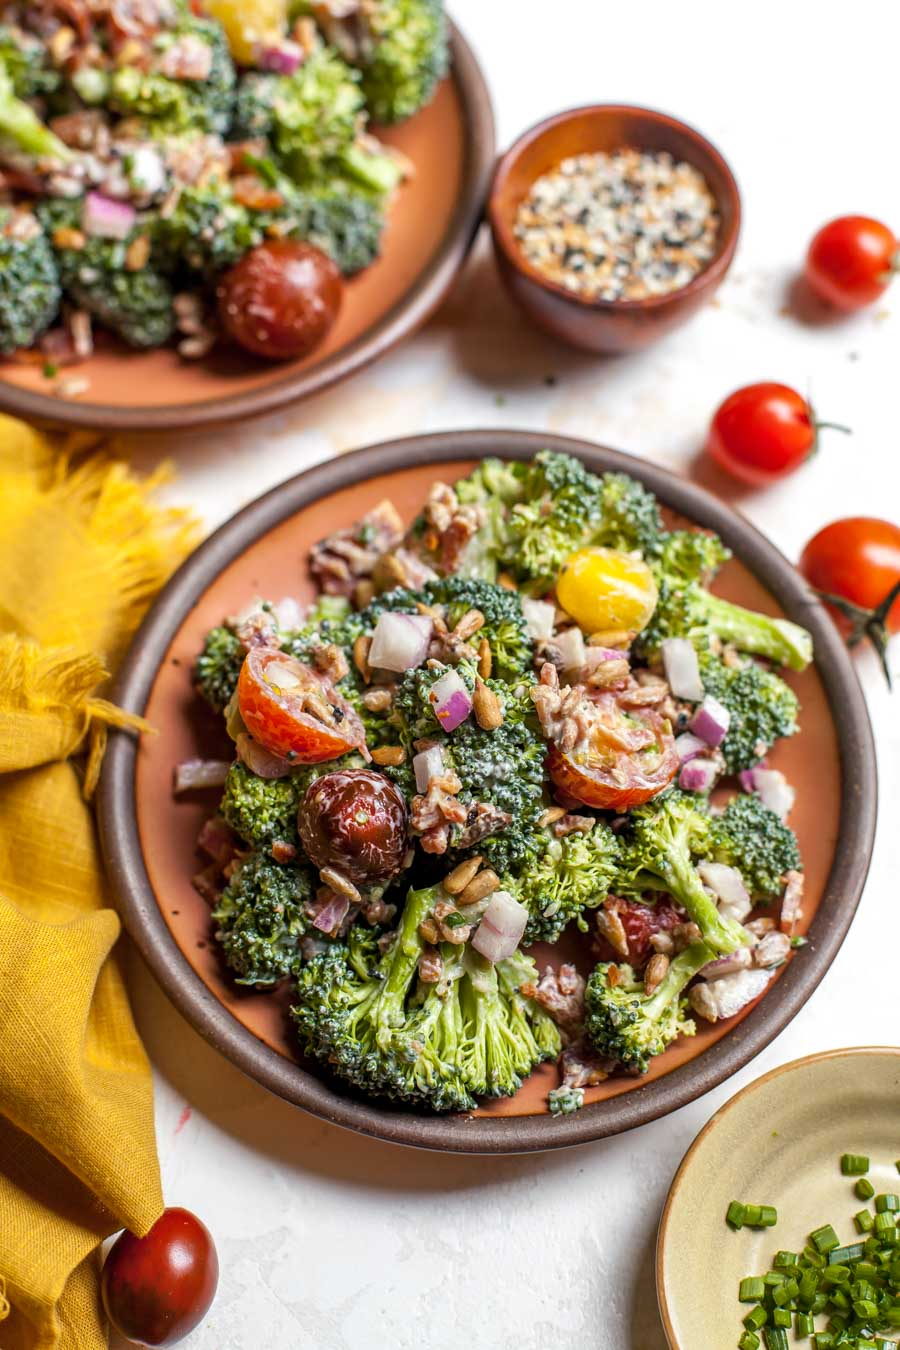 Everything Bagel Spiced Broccoli Salad with Goat Cheese Dressing